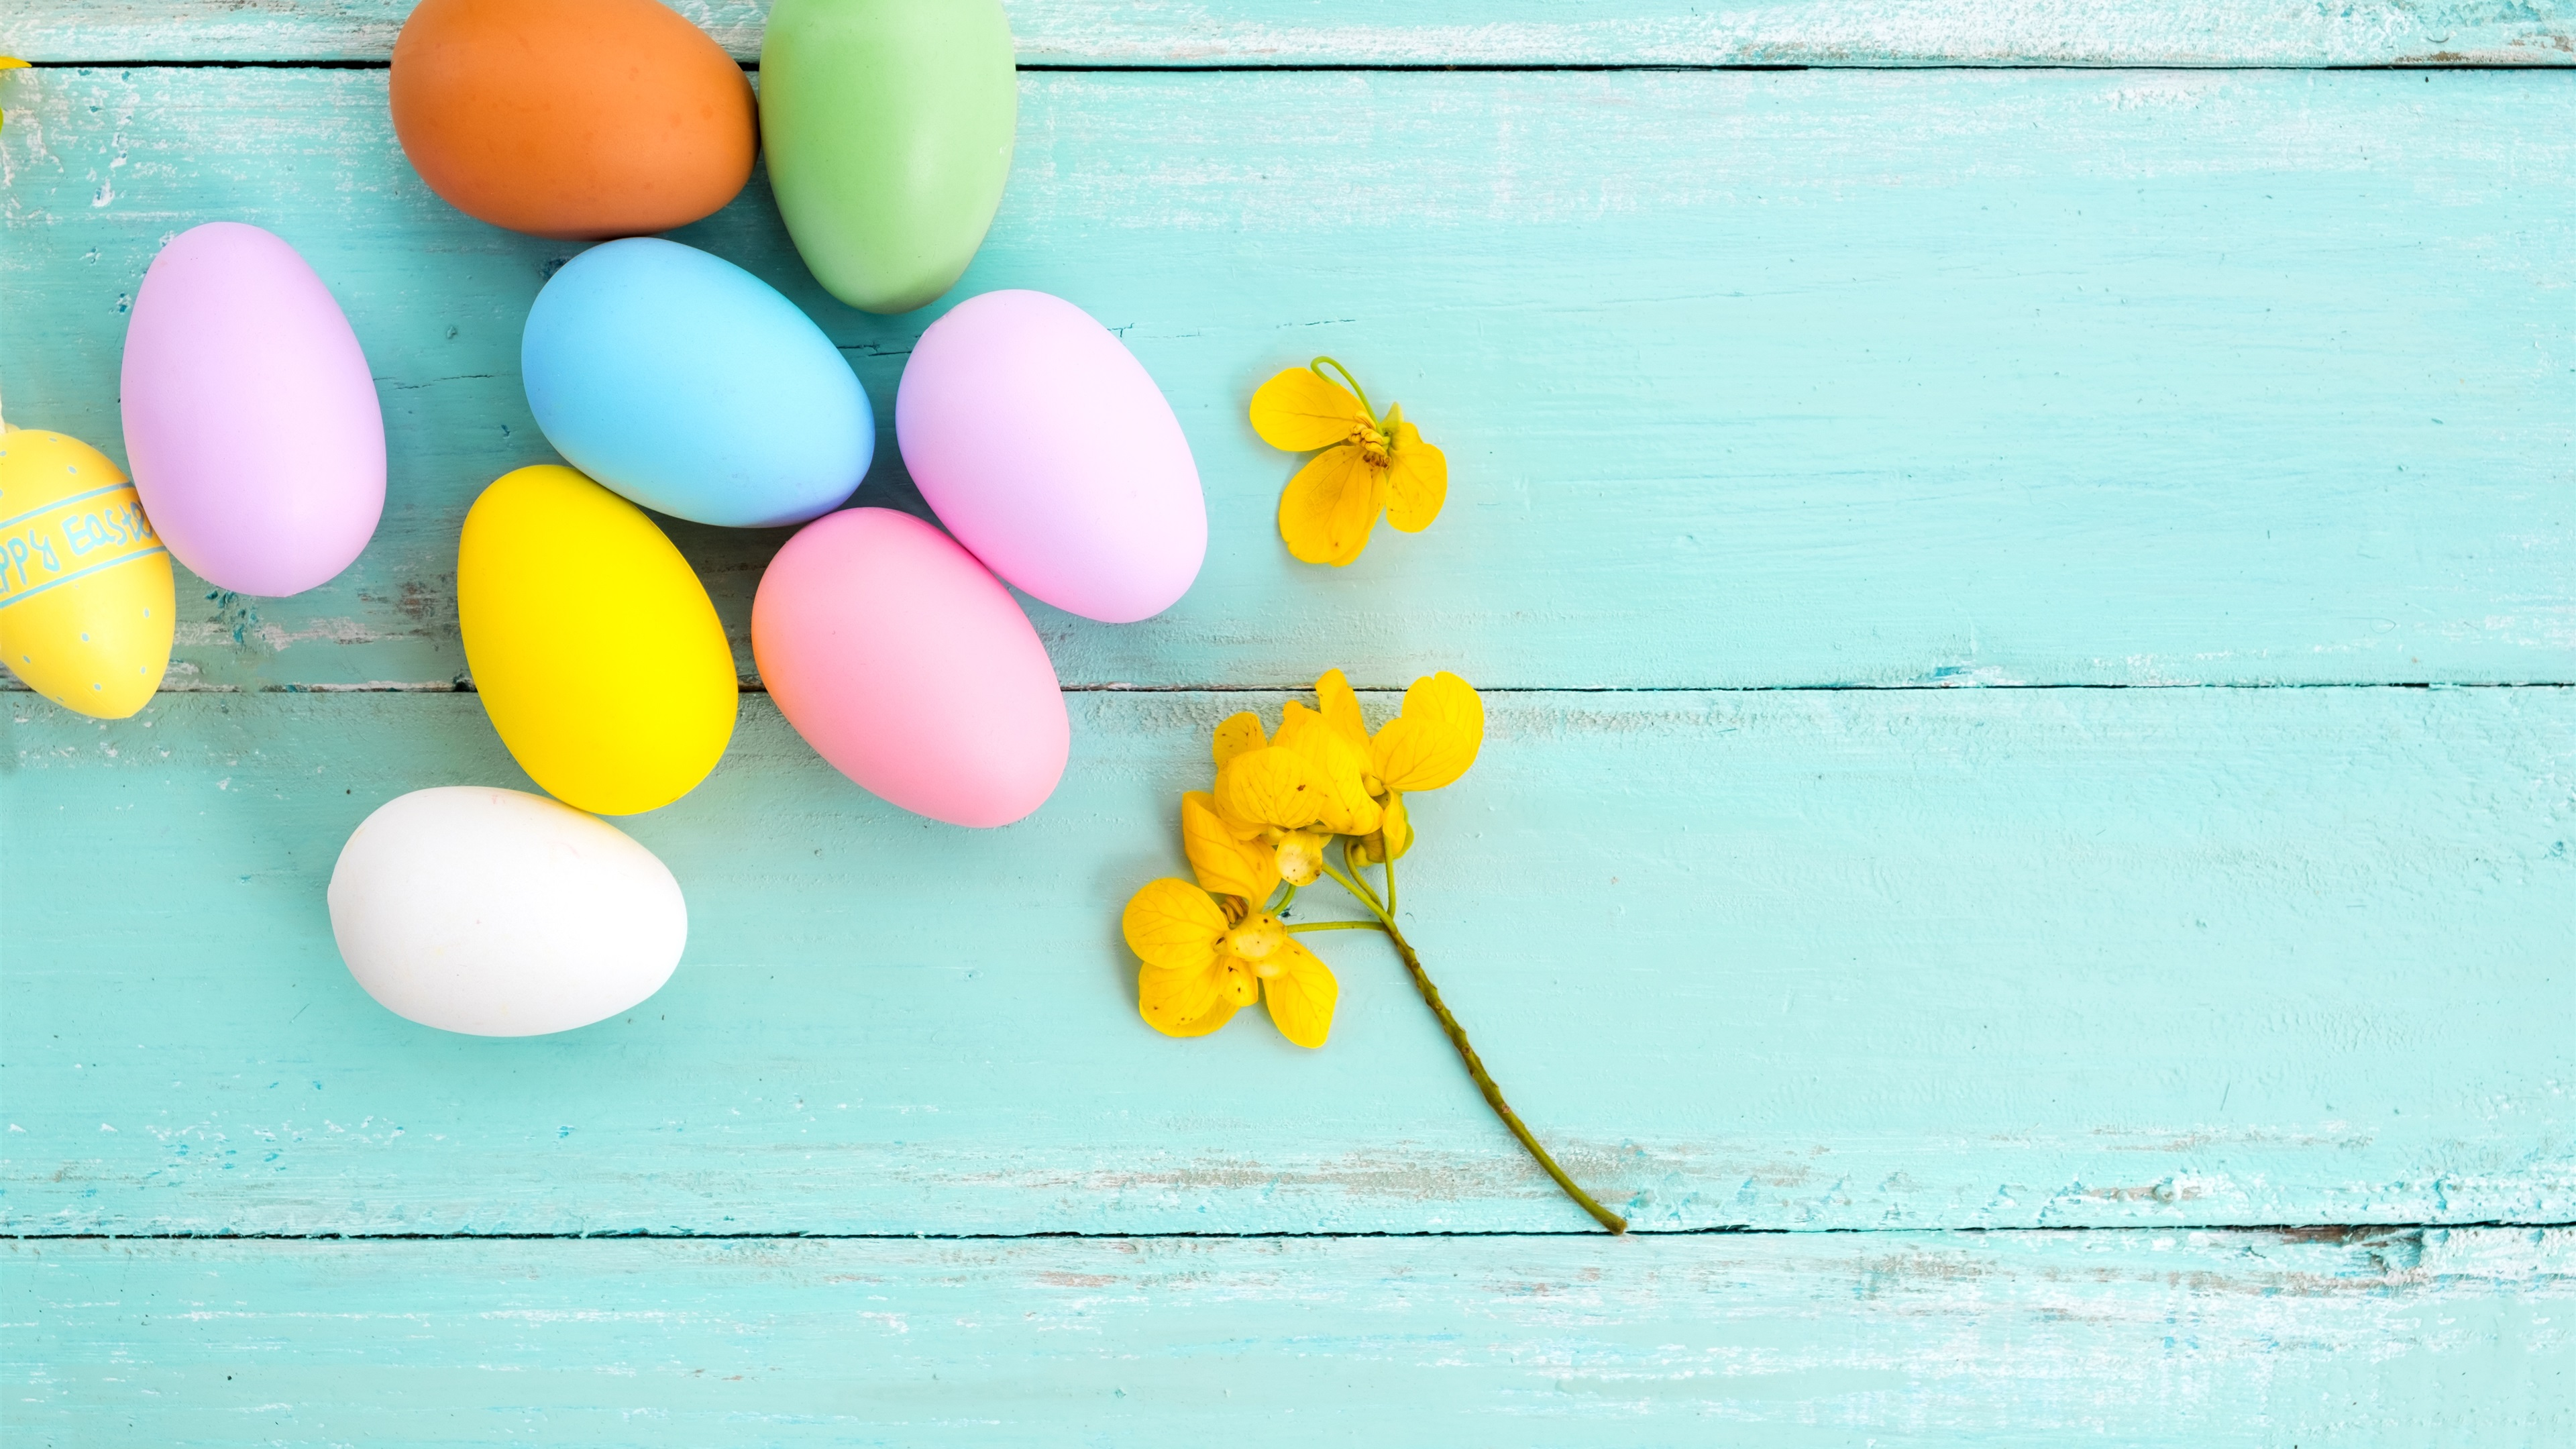 Colorful-eggs-yellow-flower-blue-wood-background-Easter_3840x2160